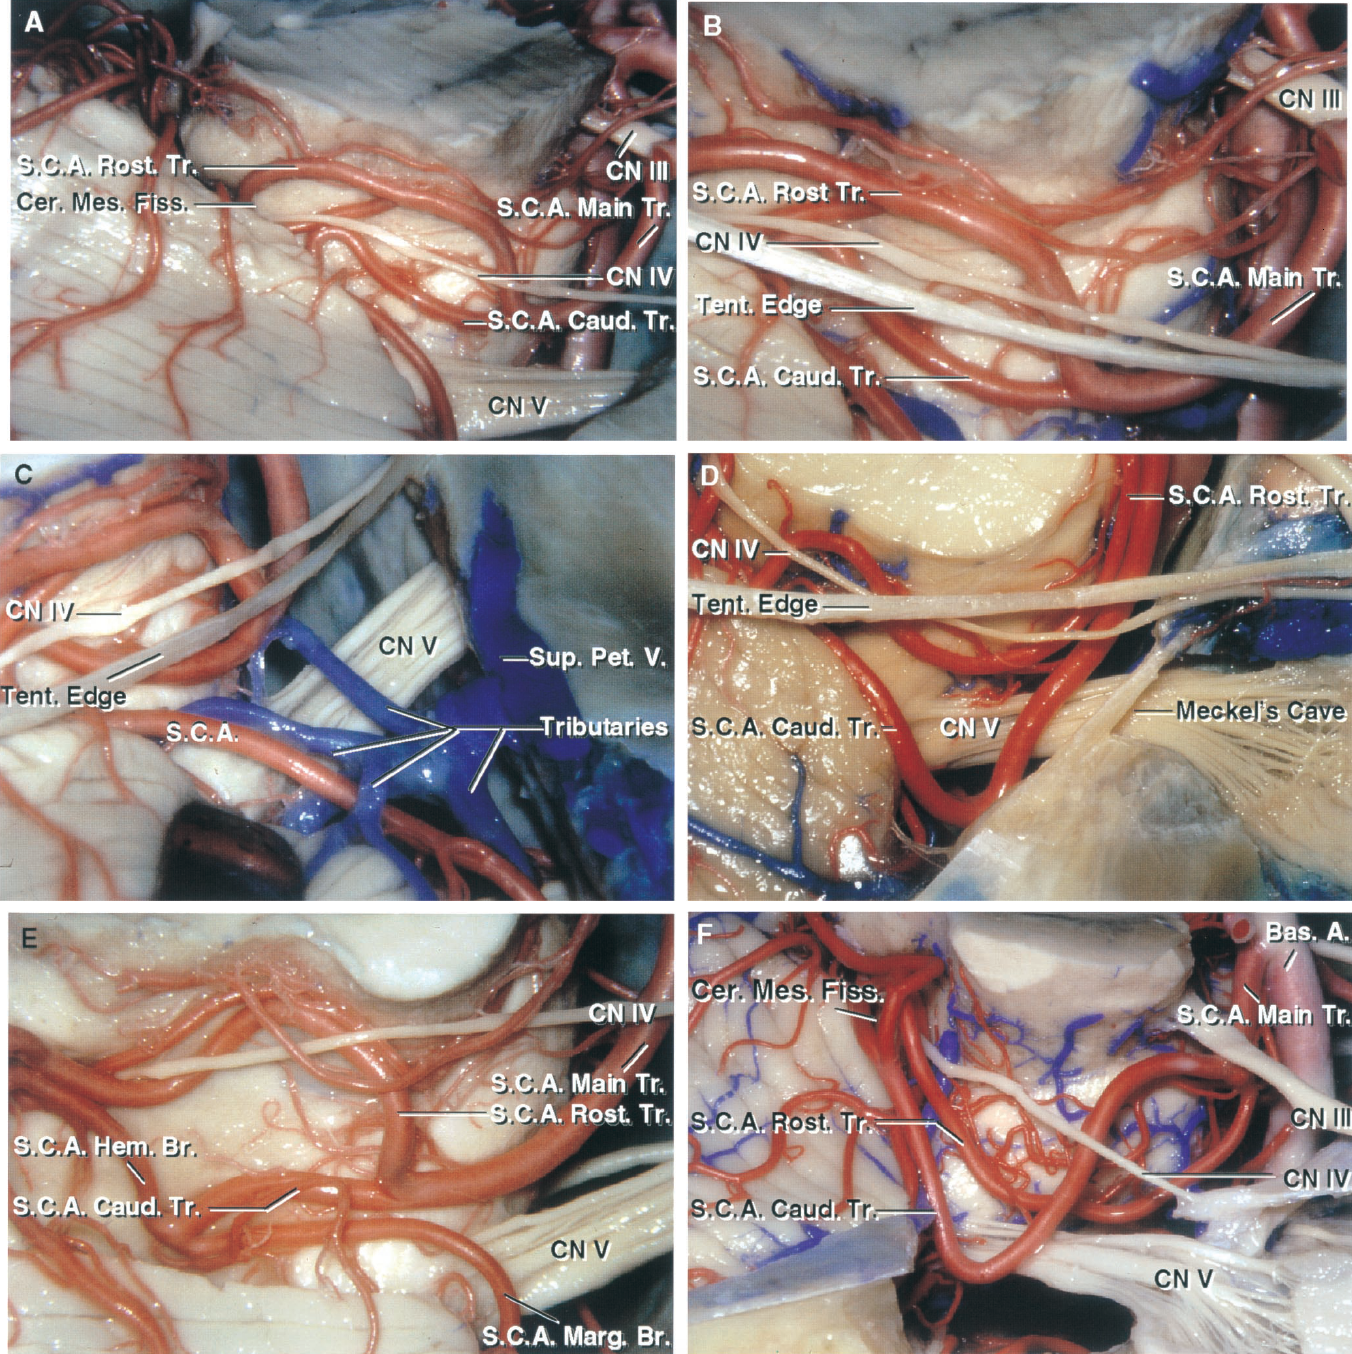 FIGURE 2.10. SCA trunks. A, the main trunk of the SCA bifurcates above the trigeminal nerve into a rostral and caudal trunk. The main trunk passes below the trochlear nerve and tentorial edge at the anterolateral brainstem, but distally the rostral trunk passes above and the caudal trunk below the trochlear nerve and tentorial edge. B, view after removing the tentorial edge. The most common compression of the trigeminal nerve in trigeminal neuralgia is by the SCA at the junction of the main with the rostral and caudal trunks, which in this case is located above the trigeminal nerve. Both trunks dip into the cerebellomesencephalic fissure before reaching the tentorial surface. C, this superior petrosal vein has multiple tributaries that have become entwined with the branches of the SCA. These veins often need to be coagulated and divided in reaching the trigeminal nerve. The SCA could be obliterated in coagulating the tributaries of the superior petrosal vein unless care is taken to carefully separate the arterial trunks from the venous tributaries. D, this SCA has a duplicate origin in which both the rostral and caudal trunks arise directly from the basilar artery. Both trunks, at the anterolateral brainstem, pass below the tentorial edge and trochlear nerve and above the trigeminal nerve. At the posterolateral margin of the brainstem, the rostral trunk loops above the level of the trochlear nerve and tentorial edge. The caudal trunk rests against the posterior trigeminal root as the nerve passes below the anterior edge of the tentorium to enter Meckel's cave. E, another SCA. The main trunk passes above the trigeminal nerve before bifurcating into rostral and caudal trunks. The main trunk courses below the trochlear nerve, but the rostral trunk loops upward medial to the nerve. The caudal trunk divides into a large hemispheric branch that supplies the tentorial surface and a marginal branch, which supplies some of the upper part of the petrosal surface. F, another S